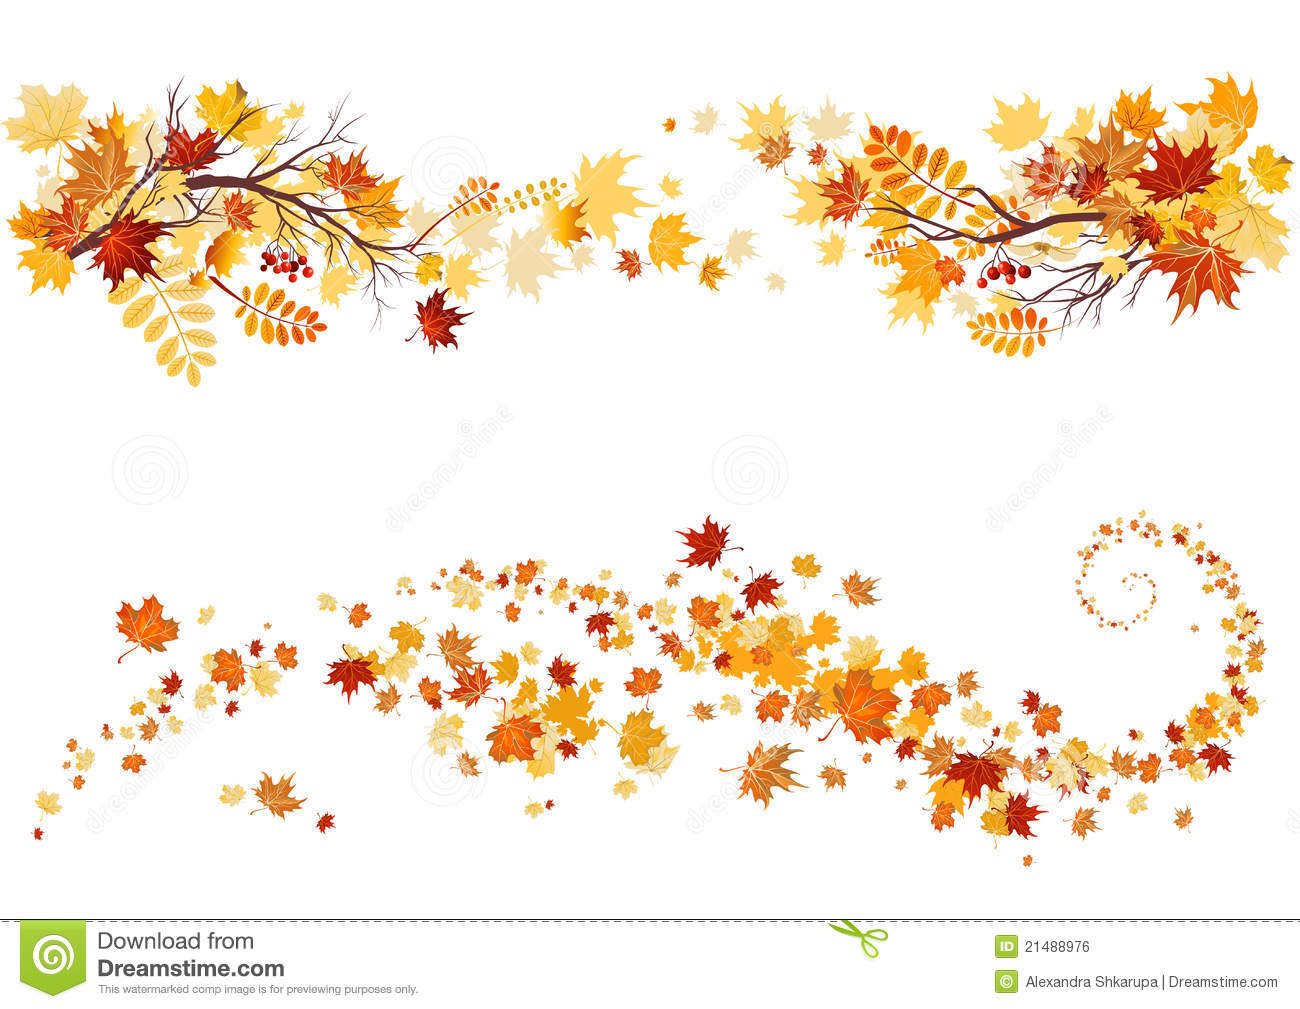 Fall Leaf Border Clipart - Clipart Kid